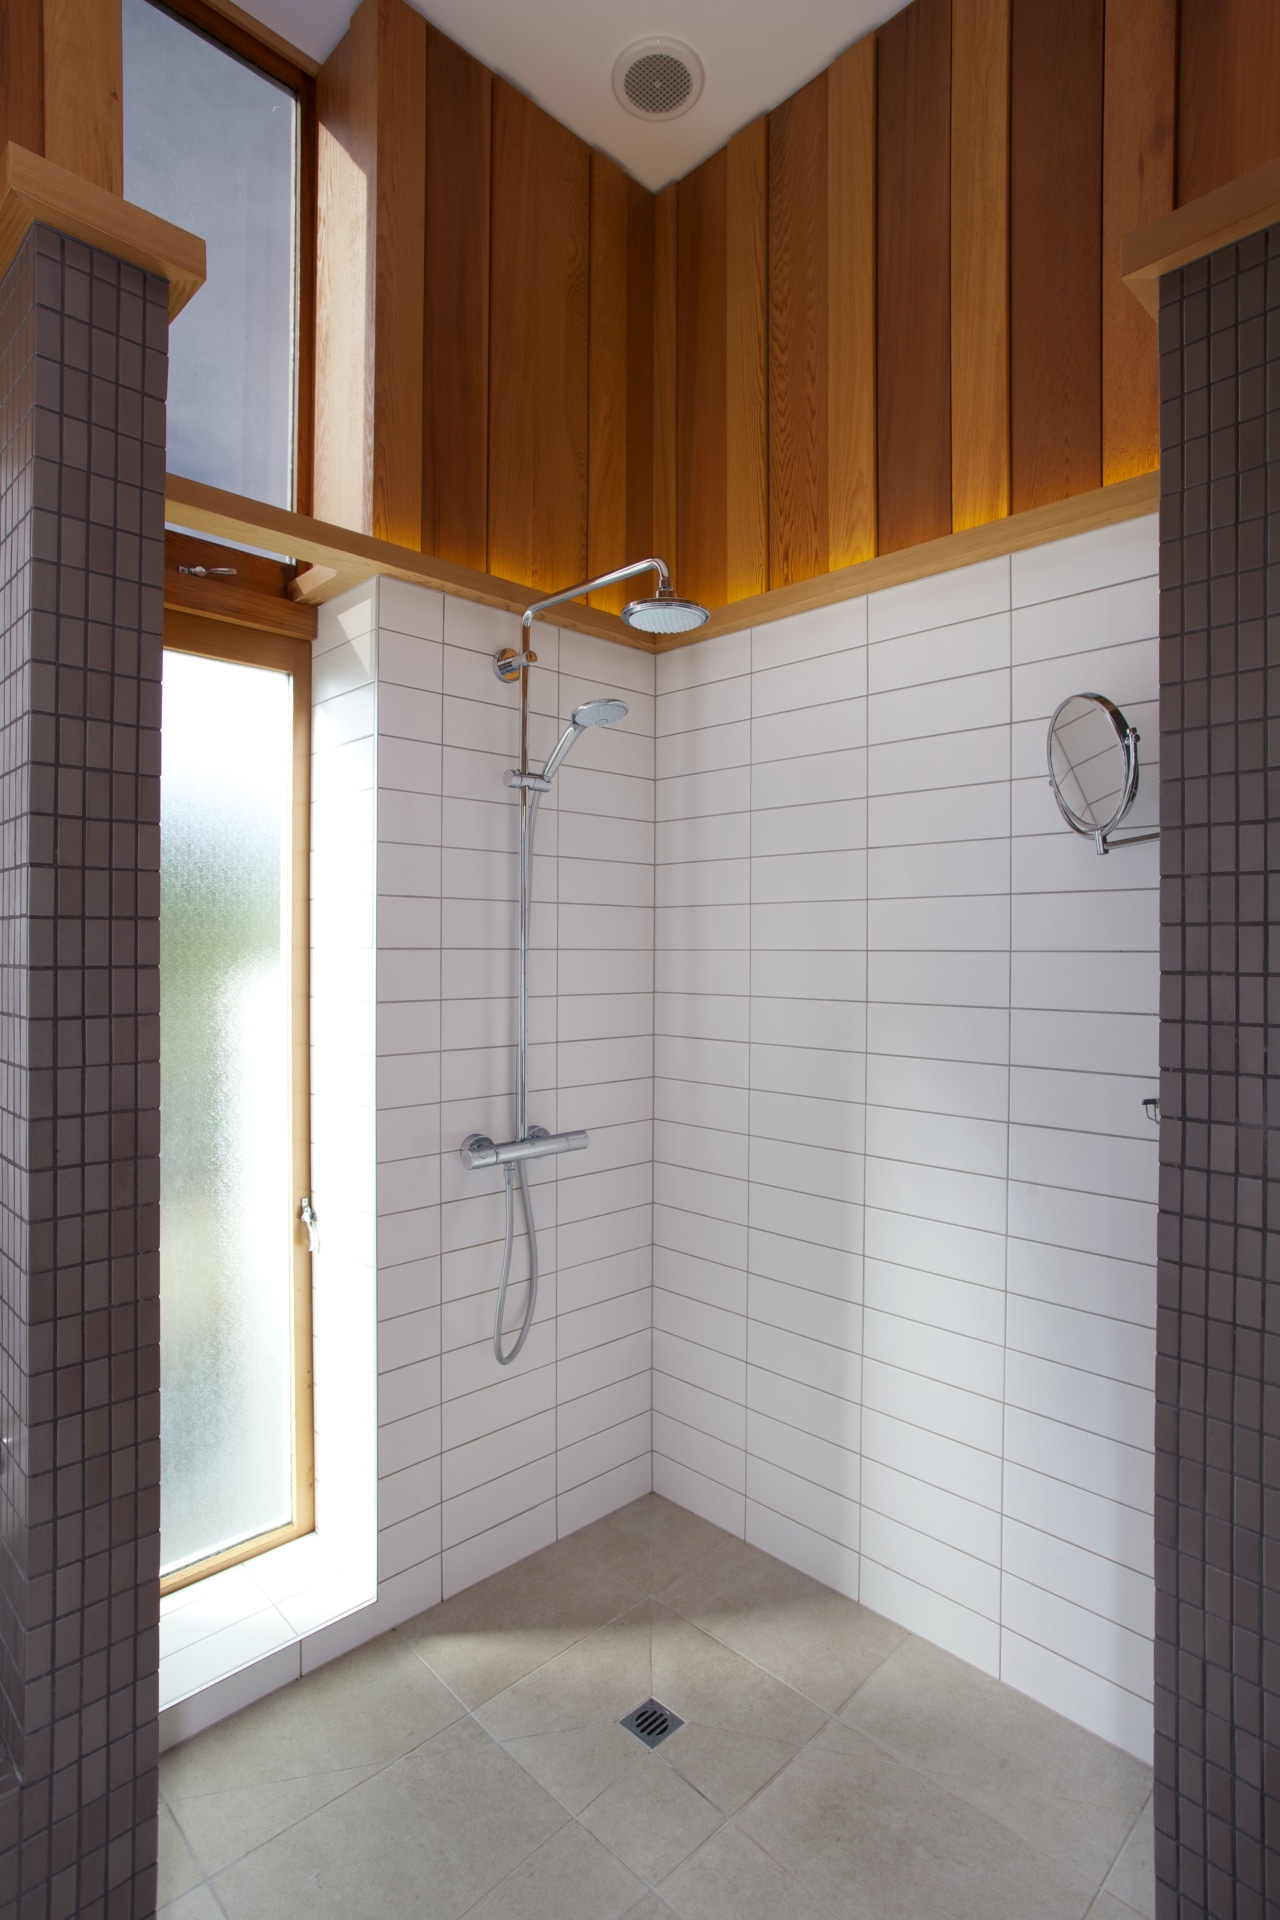 There is extensive uplighting in this remodelled bathroom, architecture, bathroom, ceiling, daylighting, floor, flooring, home, house, interior design, plumbing fixture, property, room, tile, wall, gray